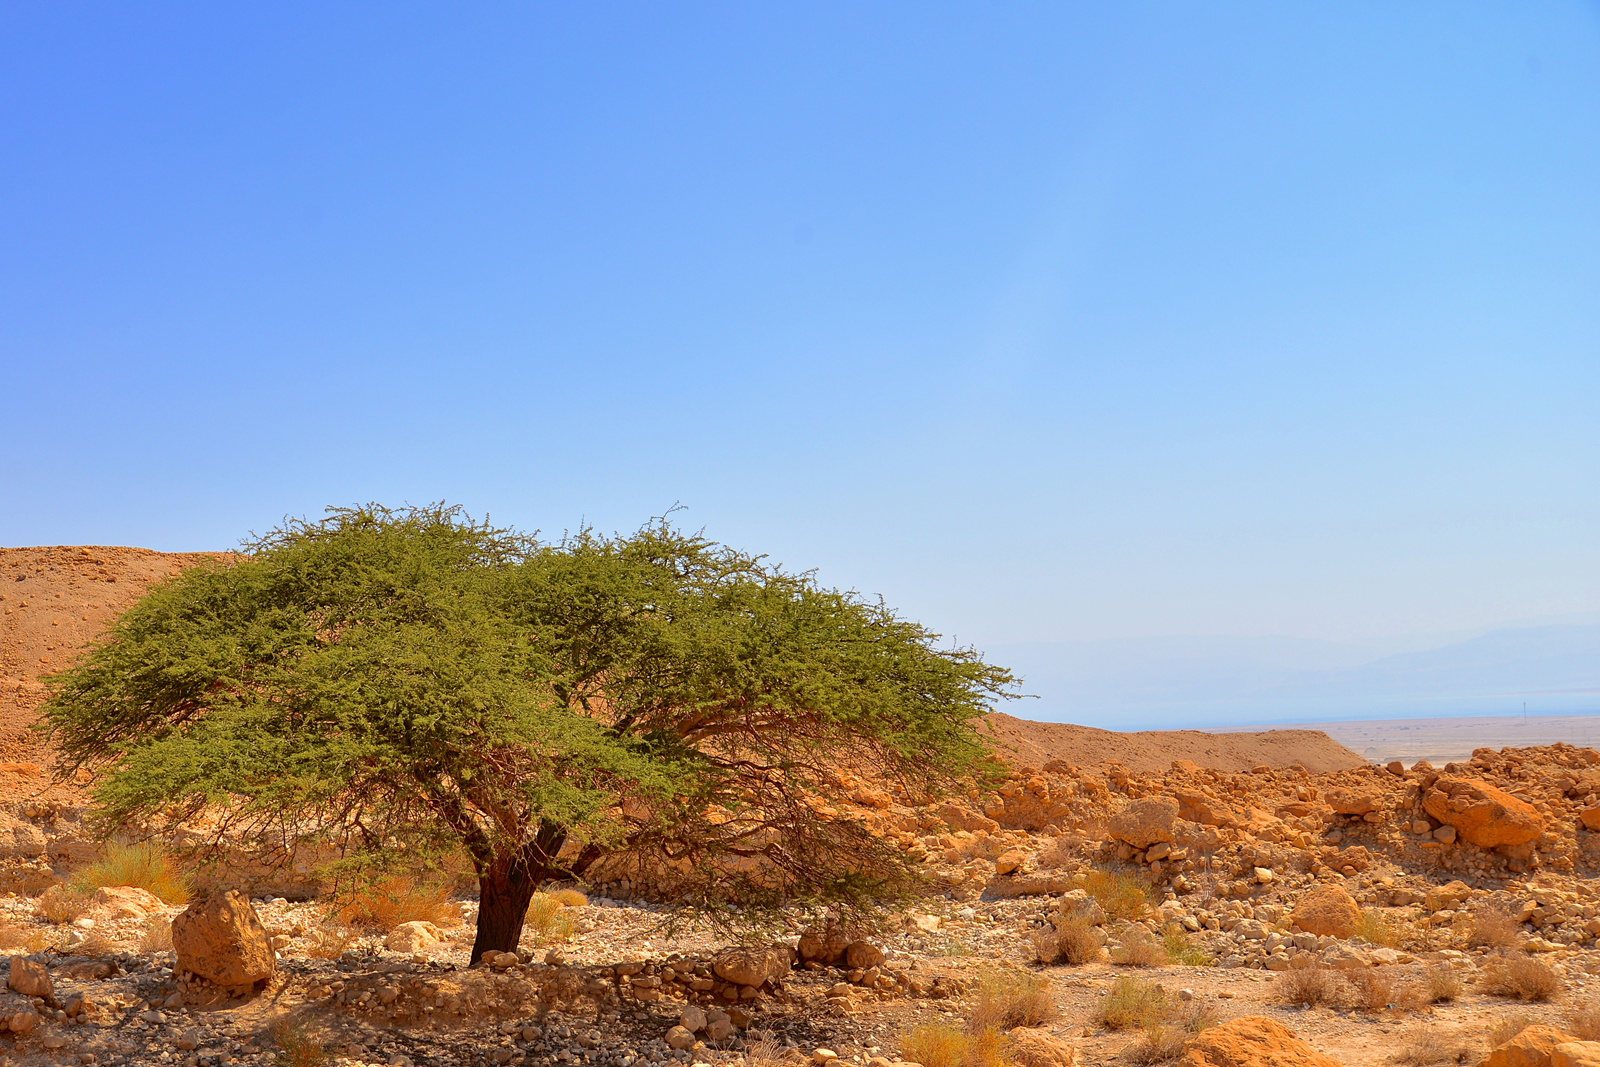 An Acacia tree outside the base of the Masada.